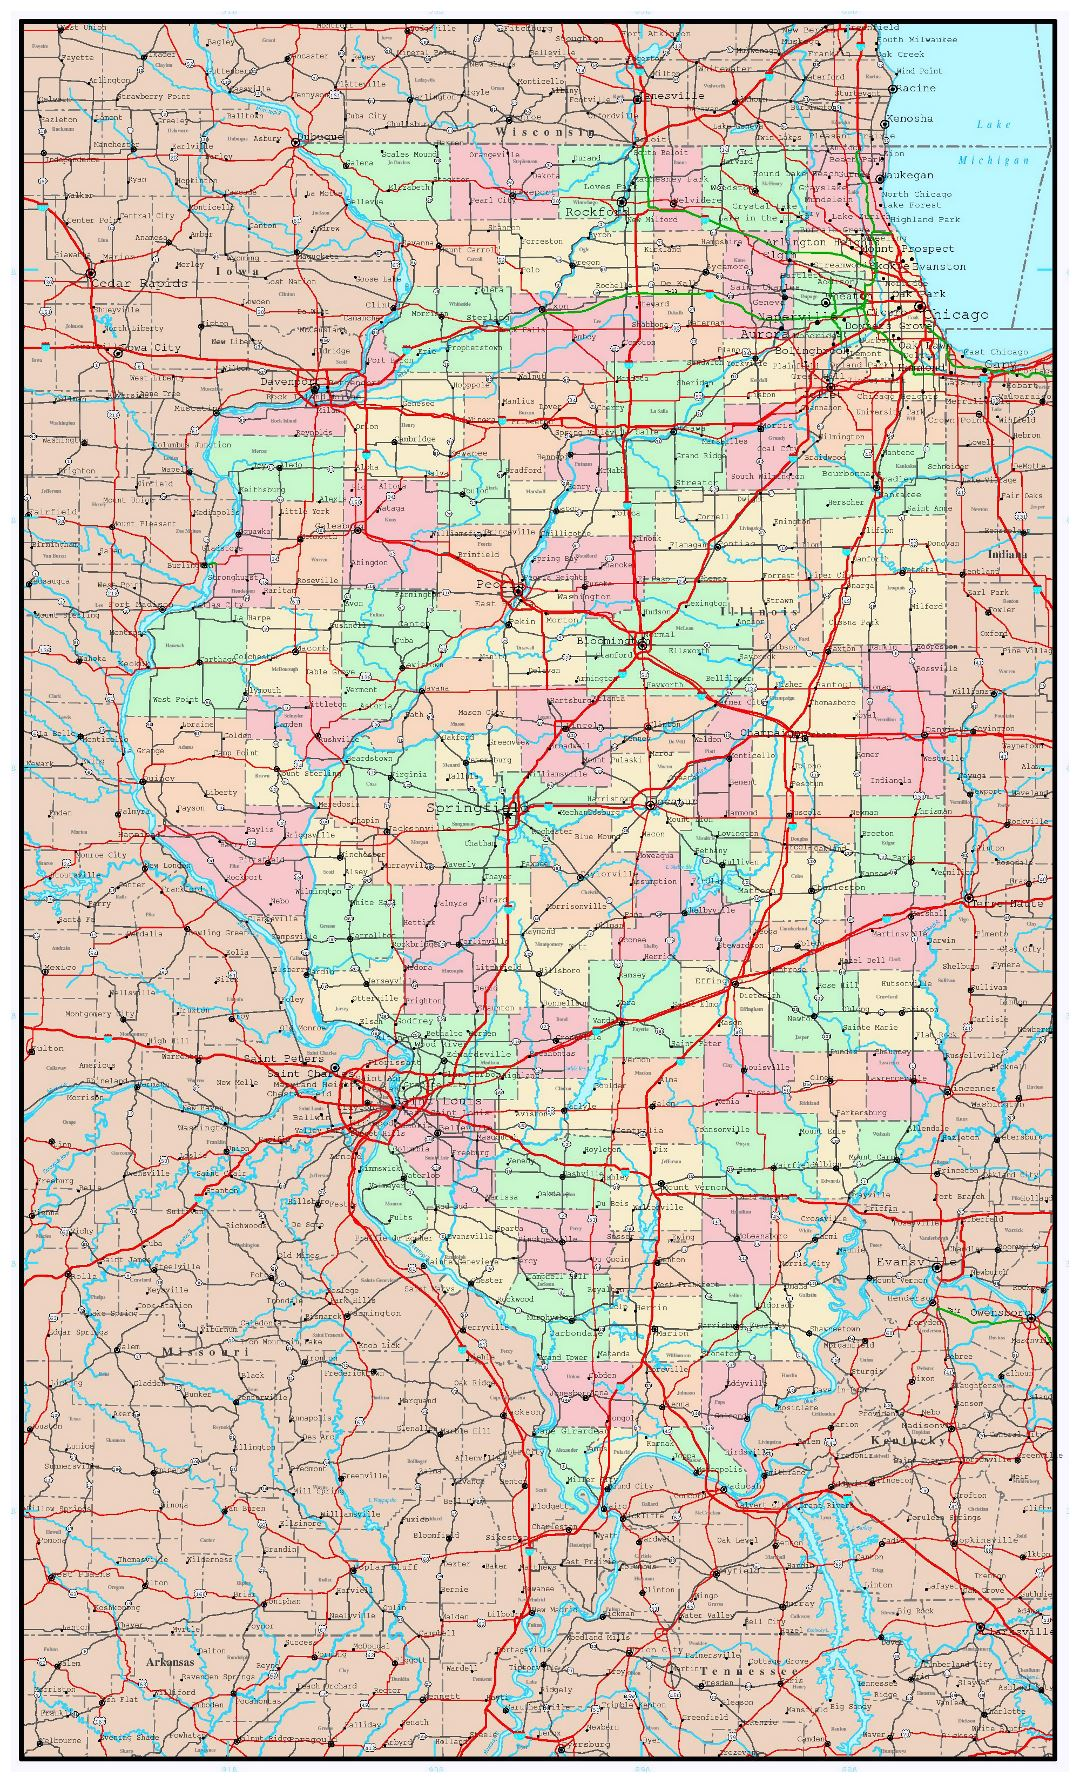 Large administrative map of Illinois state with roads, highways and major cities